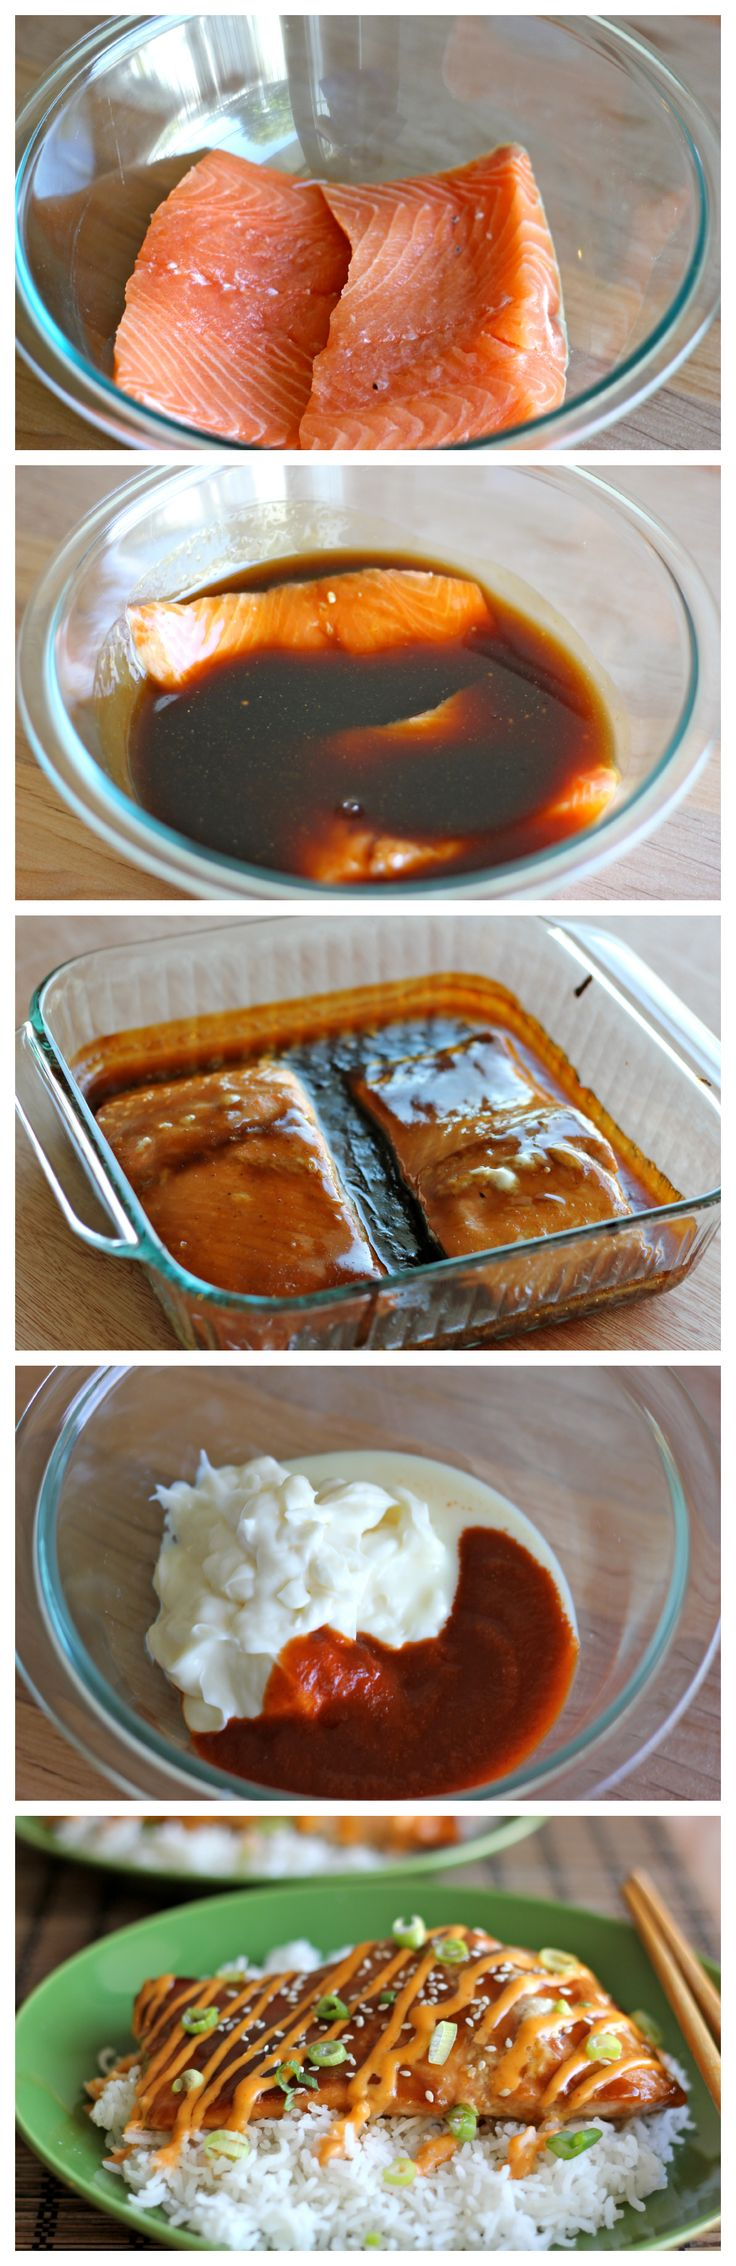 Teriyaki Salmon with Sriracha Cream Sauce - An easy salmon dish with homemade teriyaki sauce and a Sriracha cream sauce that will knock your socks off!